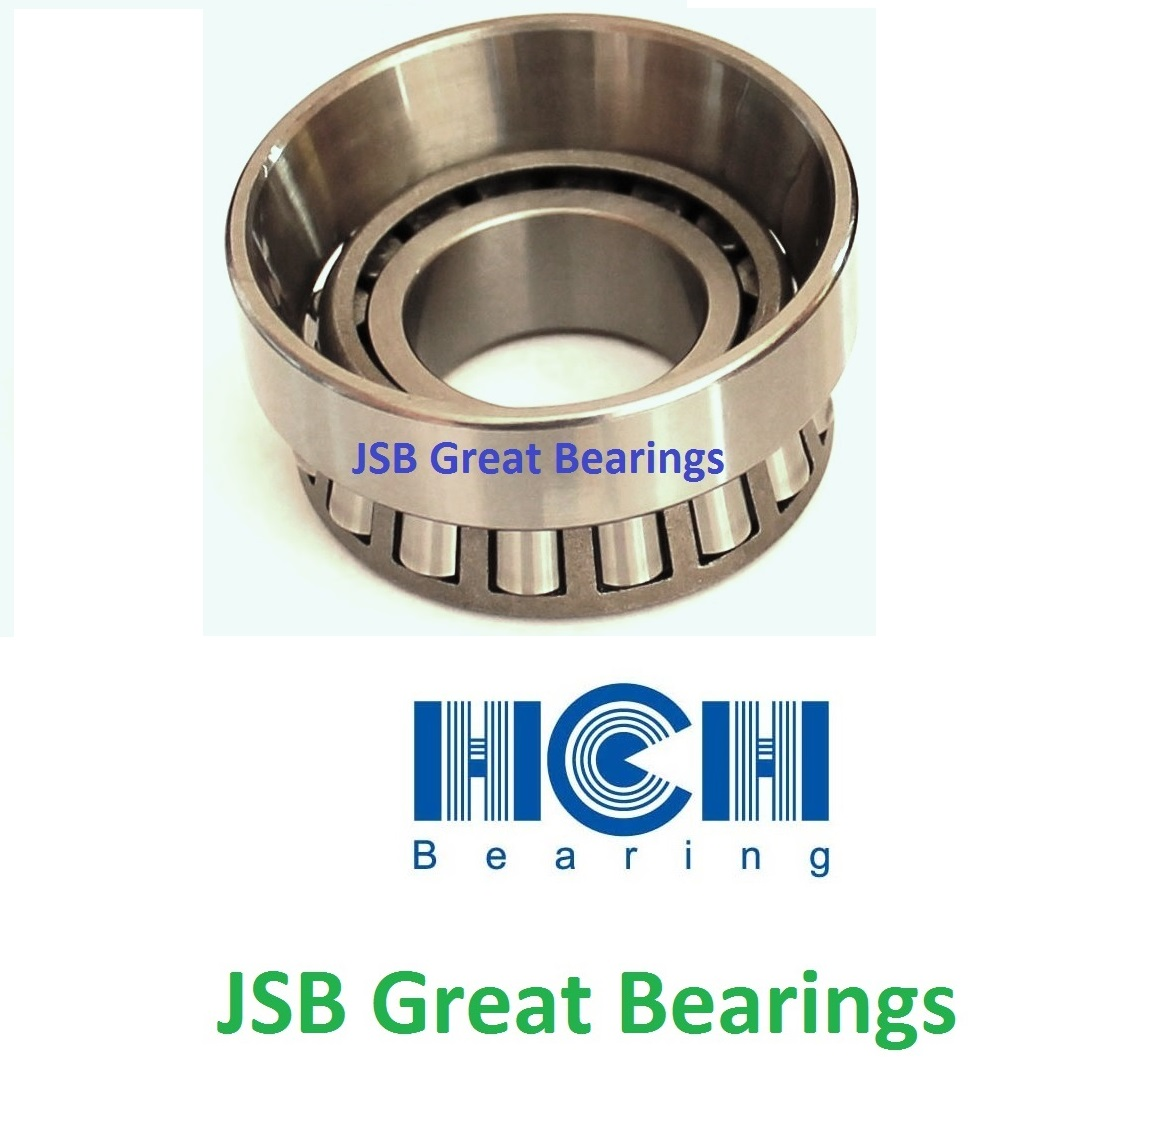 M12649/M12610 tapered roller bearing set (cup & cone) bearings M12649 / 10